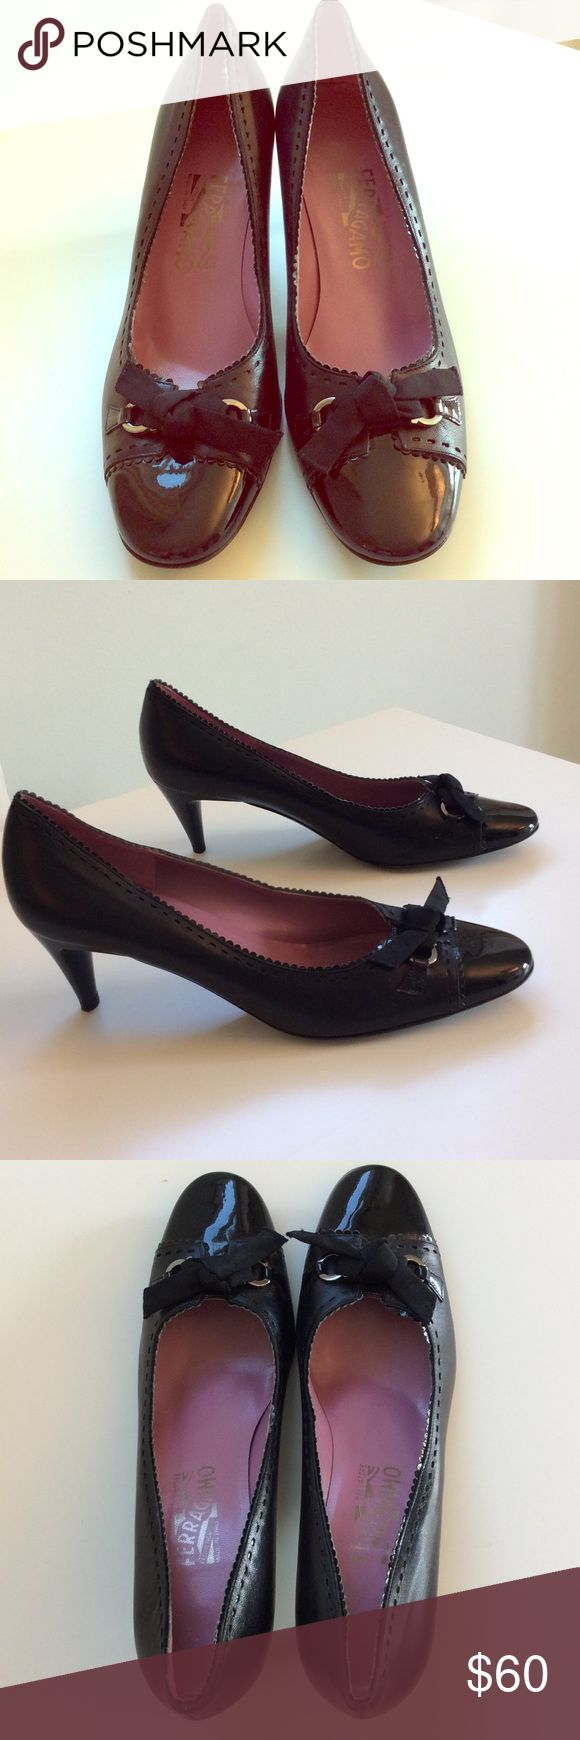 Salvatore Ferragamo black bow pump, barely worn This a beautiful pair of 2.5 in black leather heels with a patent leather cap toe.  I am reposhing these as they are simply too small, and I am an 8.5.  I took these to the cobbler who widened them slightly, but they still don't fit.  😧  i was able to wear them for about two minutes in my house.  It appears the seller barely wore them, either.  Highly recommend for a smaller foot than what is marked, (8.5 B) Salvatore Ferragamo Shoes Heels